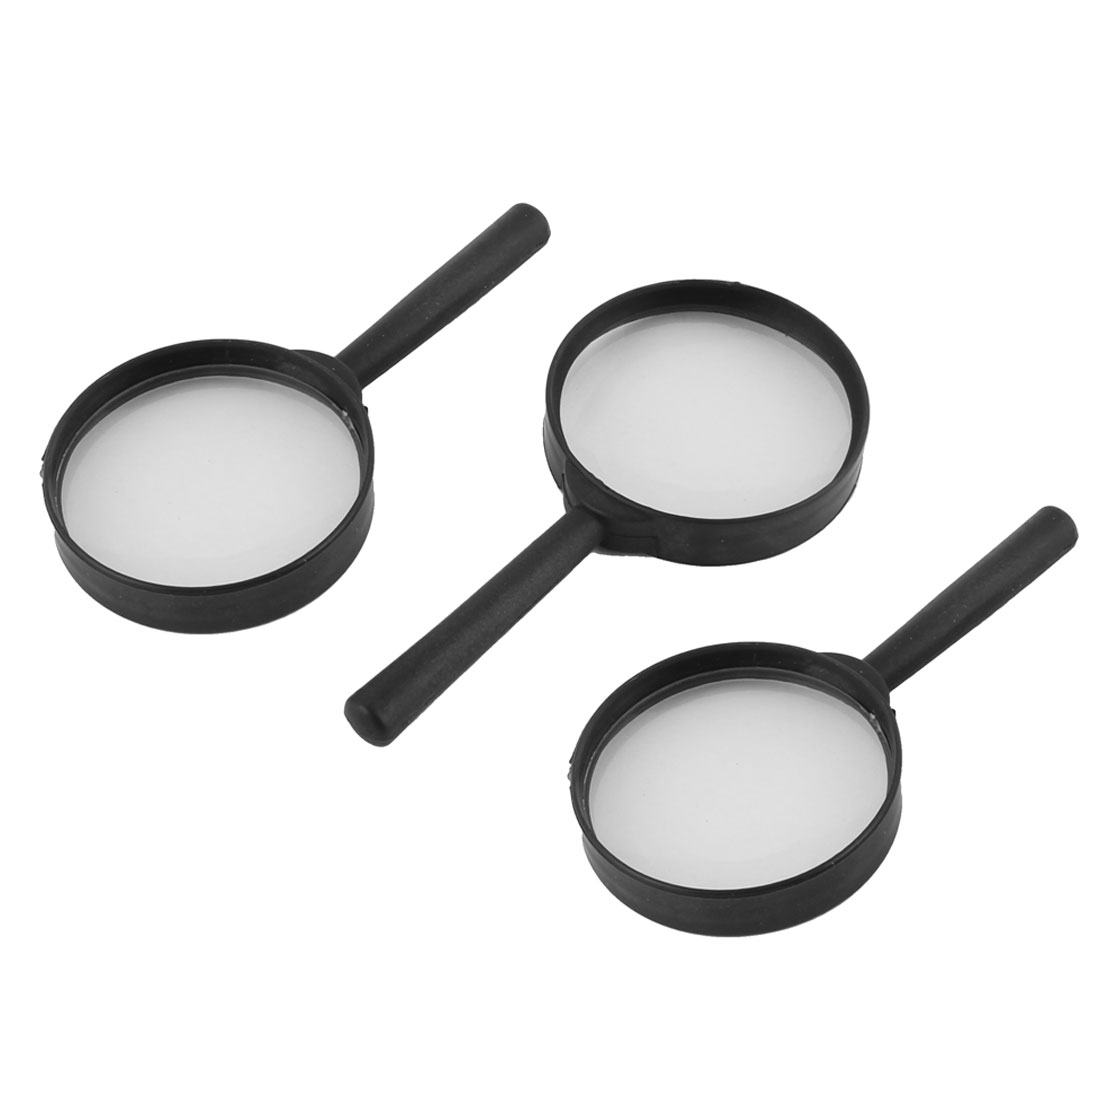 Plastic Frame Magnifying Glass Jewelry Loupe Magnifier Black Clear 5X 3 Pcs